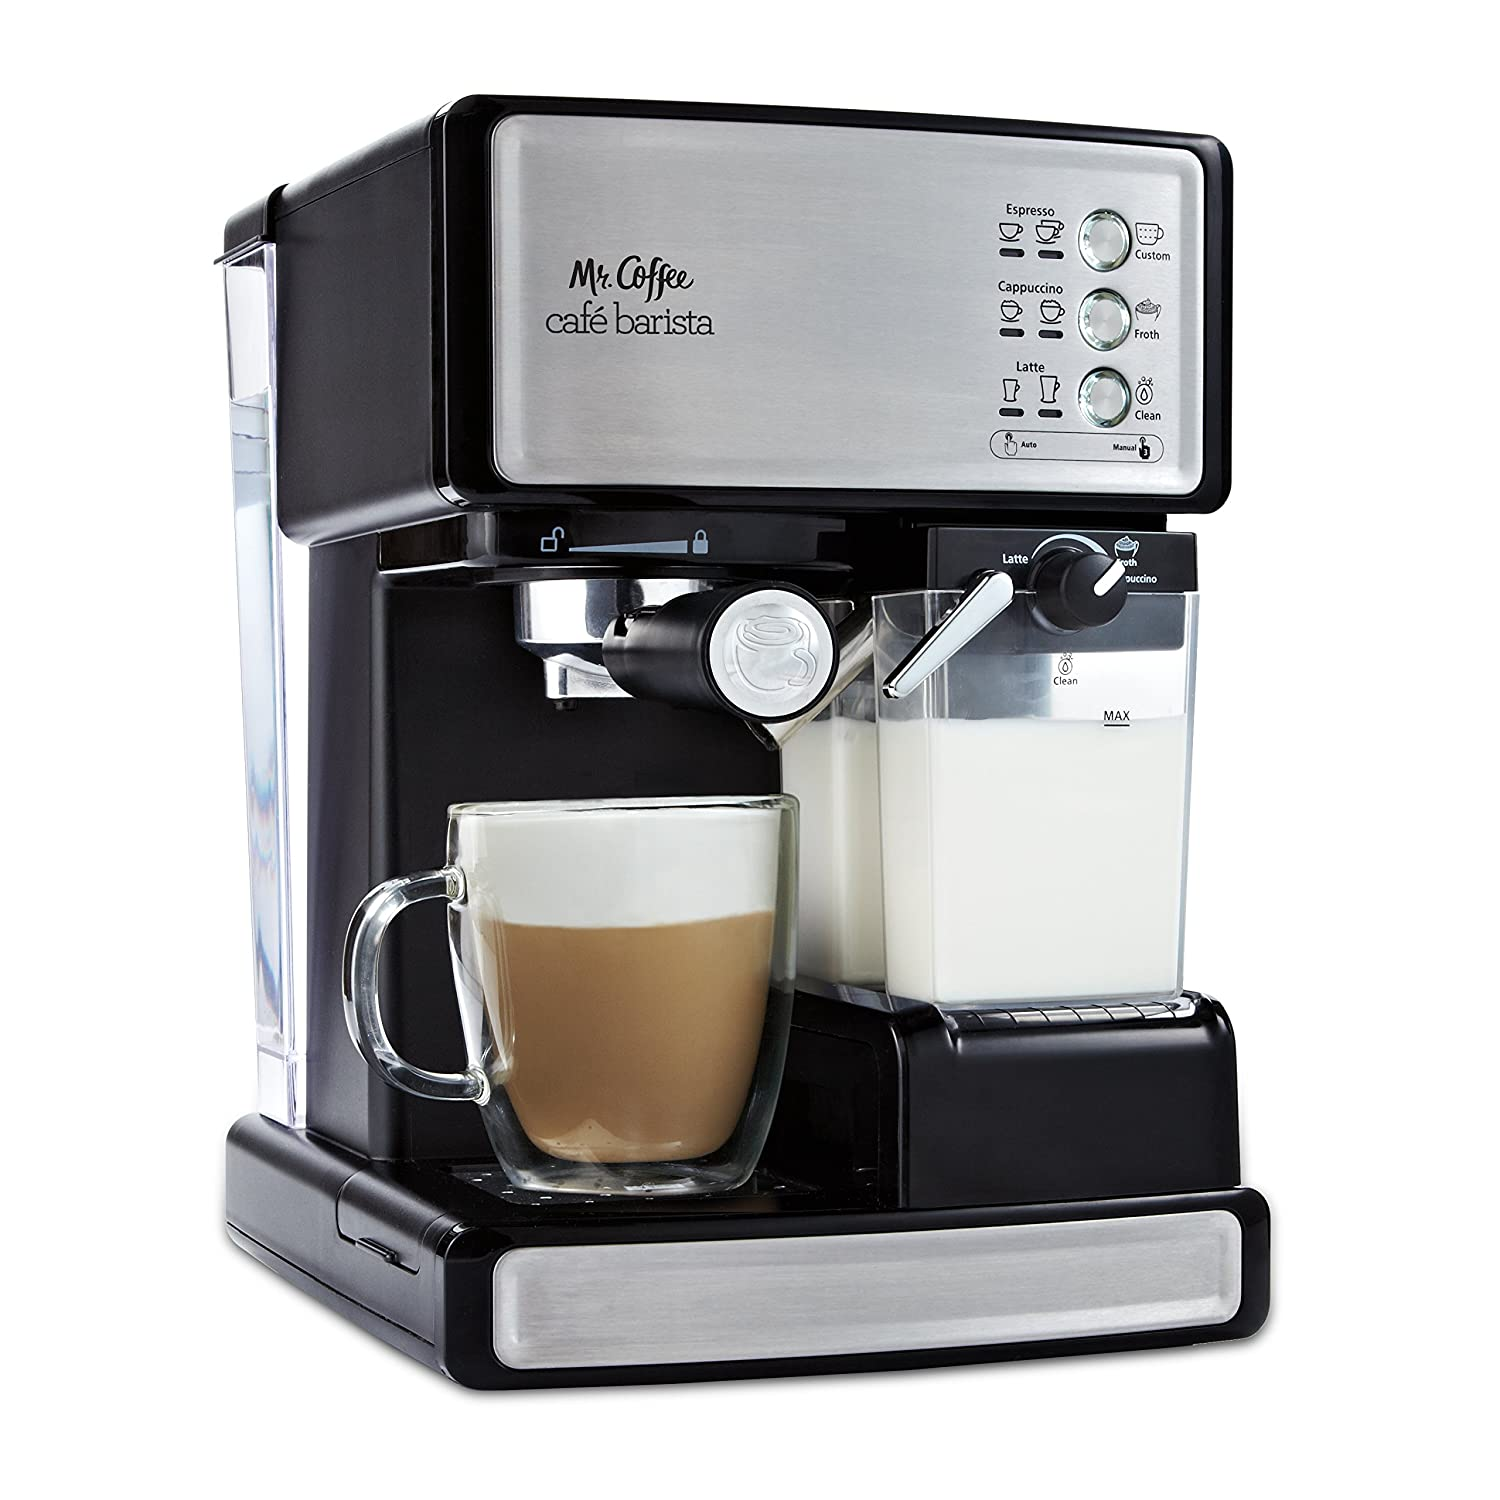 Amazon.com: Mr. Coffee Cafe Barista Espresso and Cappuccino Maker, Silver:  Semi Automatic Pump Espresso Machines: Kitchen & Dining